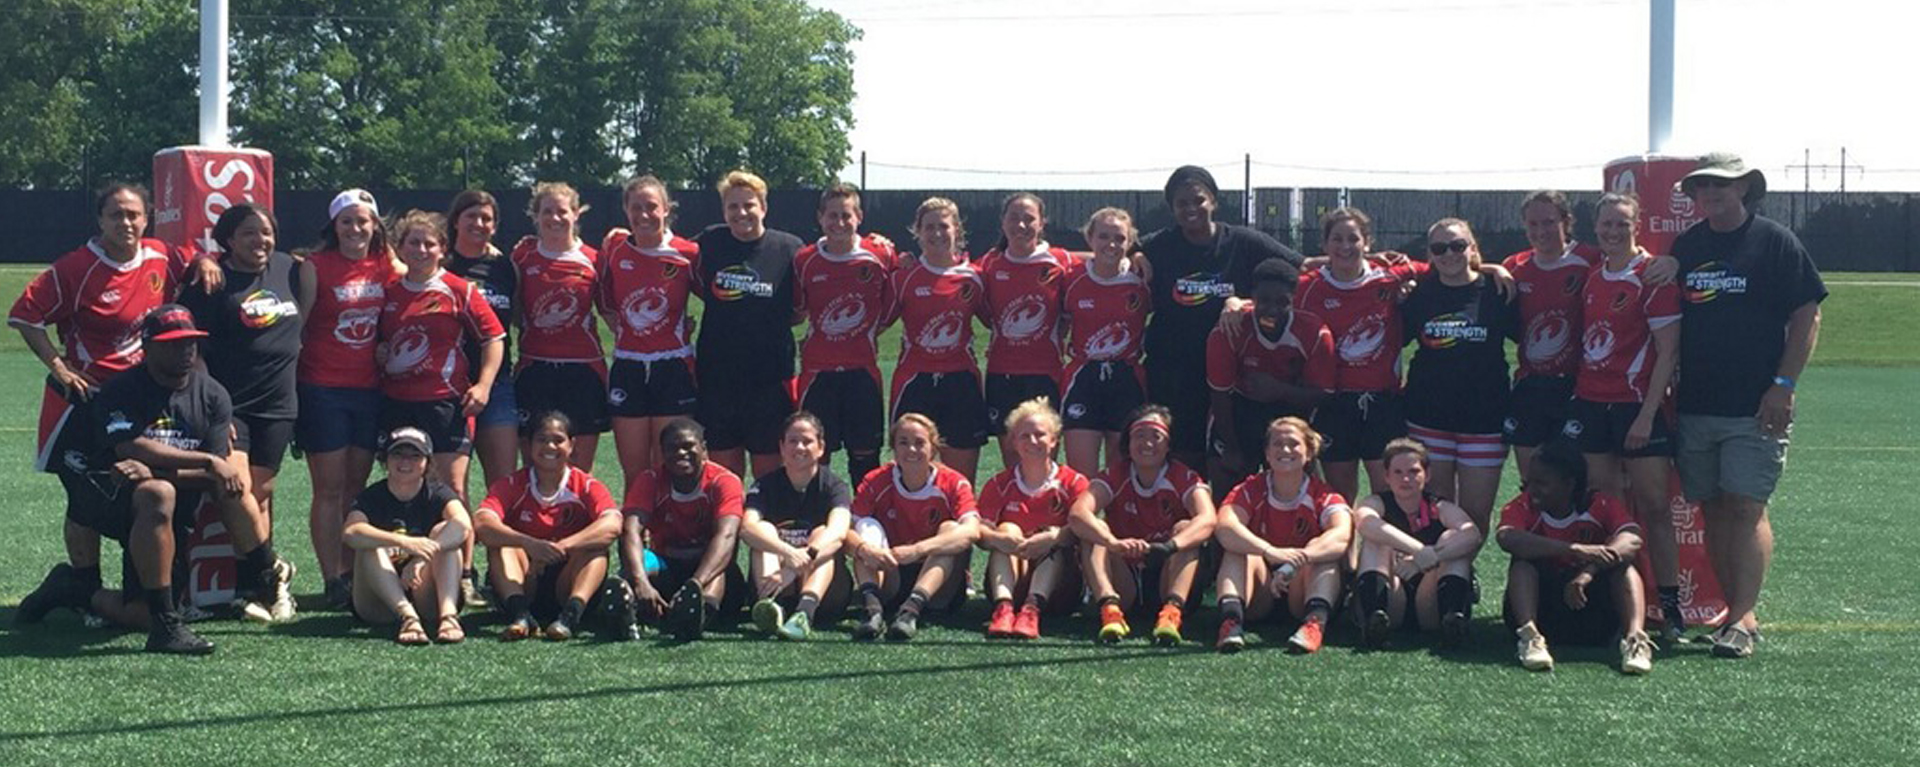 Raleigh Venom Rugby Nationals 2018